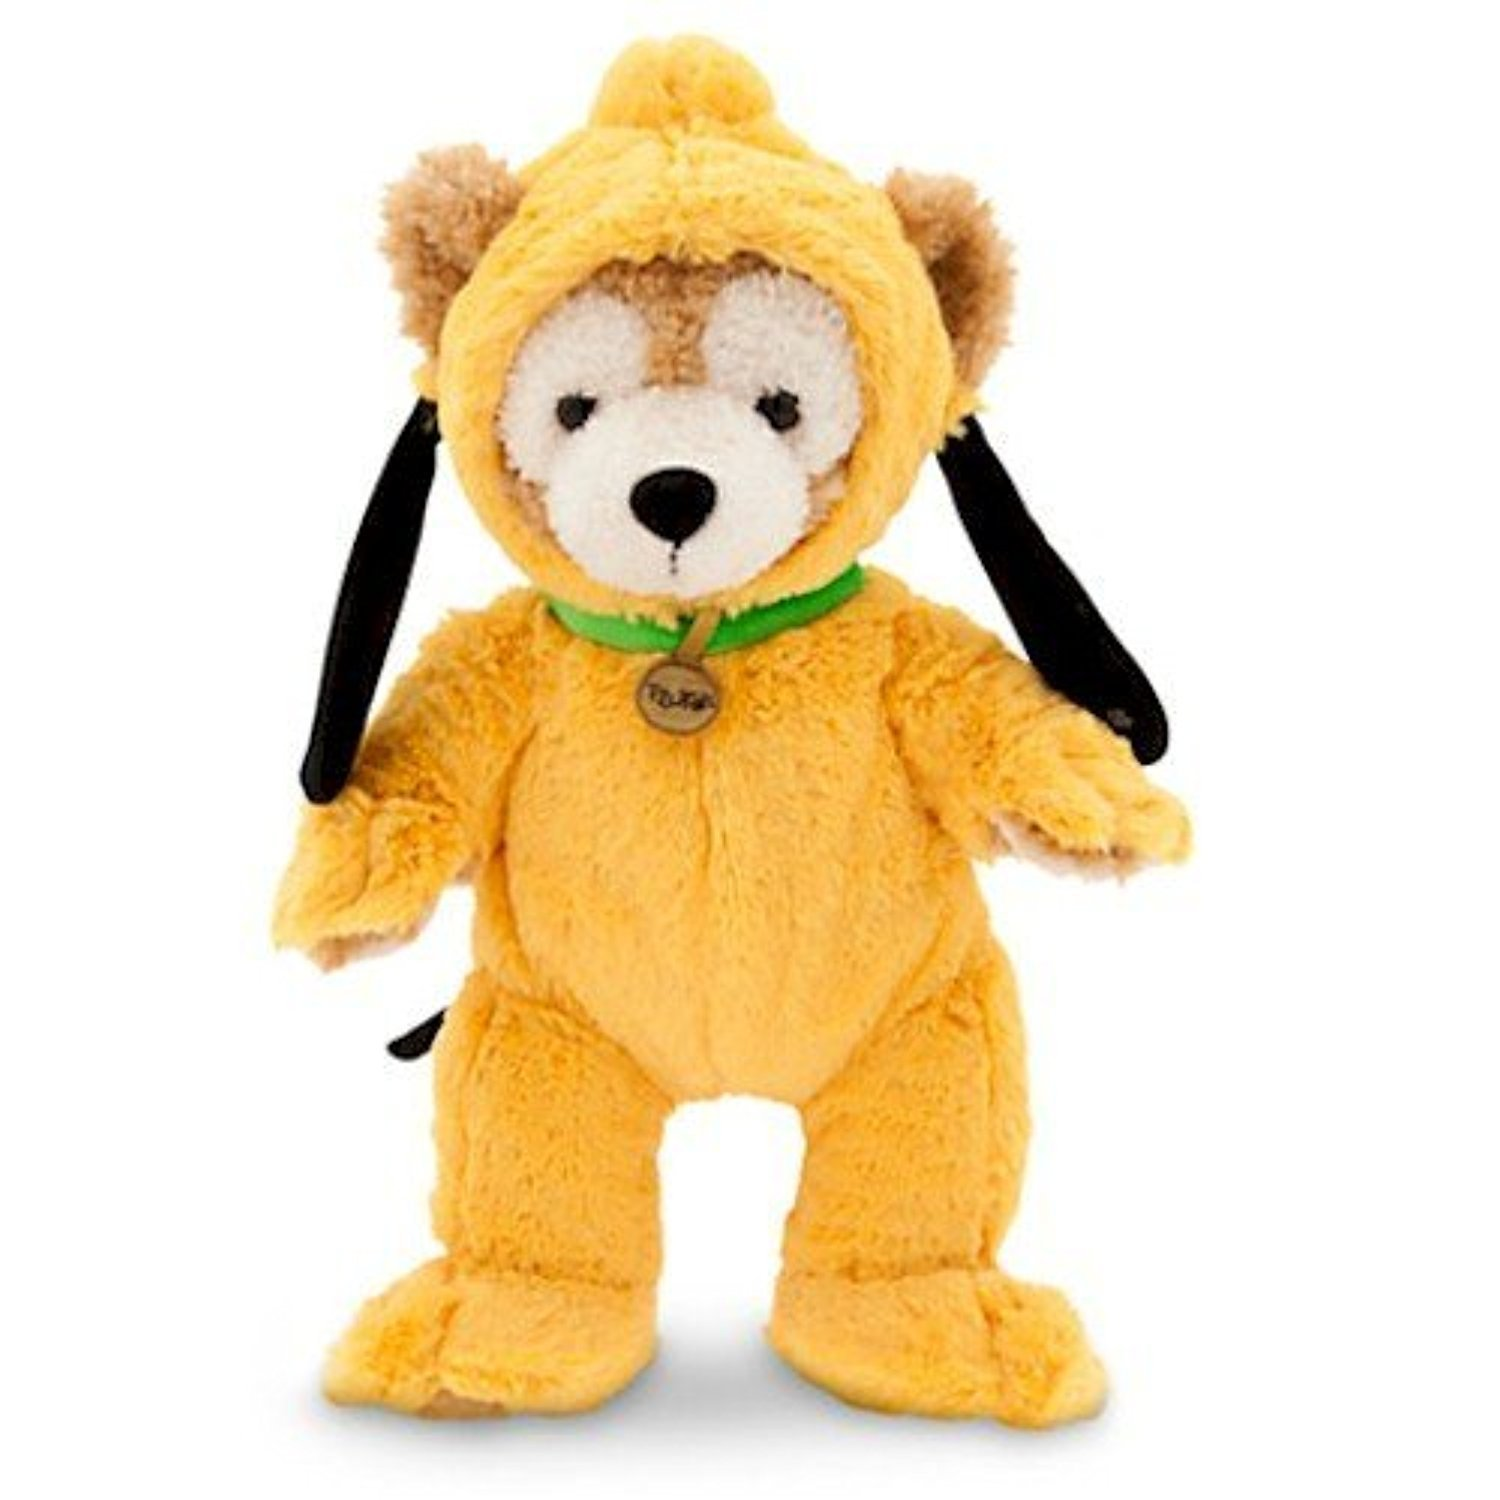 ◎送料込み◎ Duffy the Disney Bear Pluto Costume - 17''